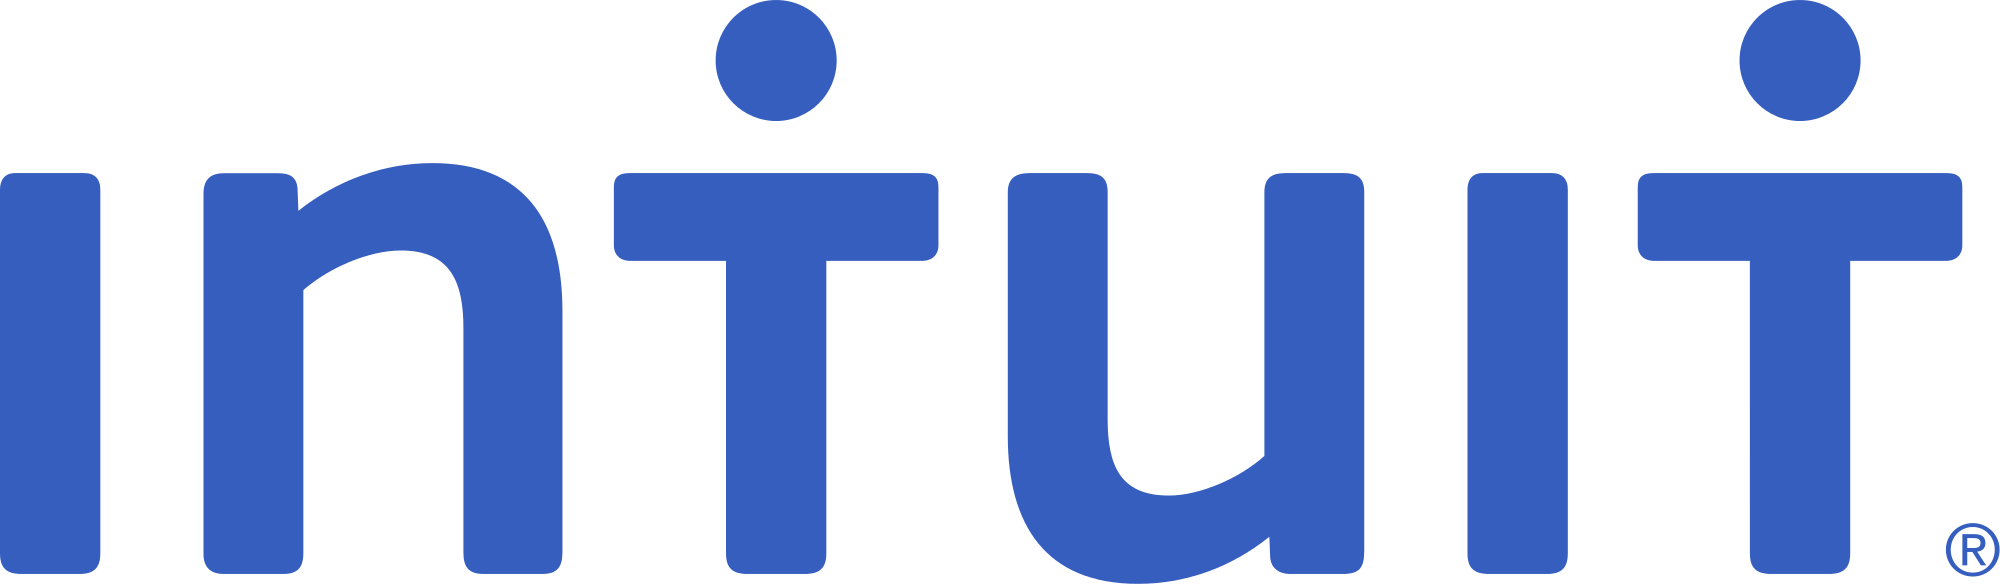 Intuit logo.png